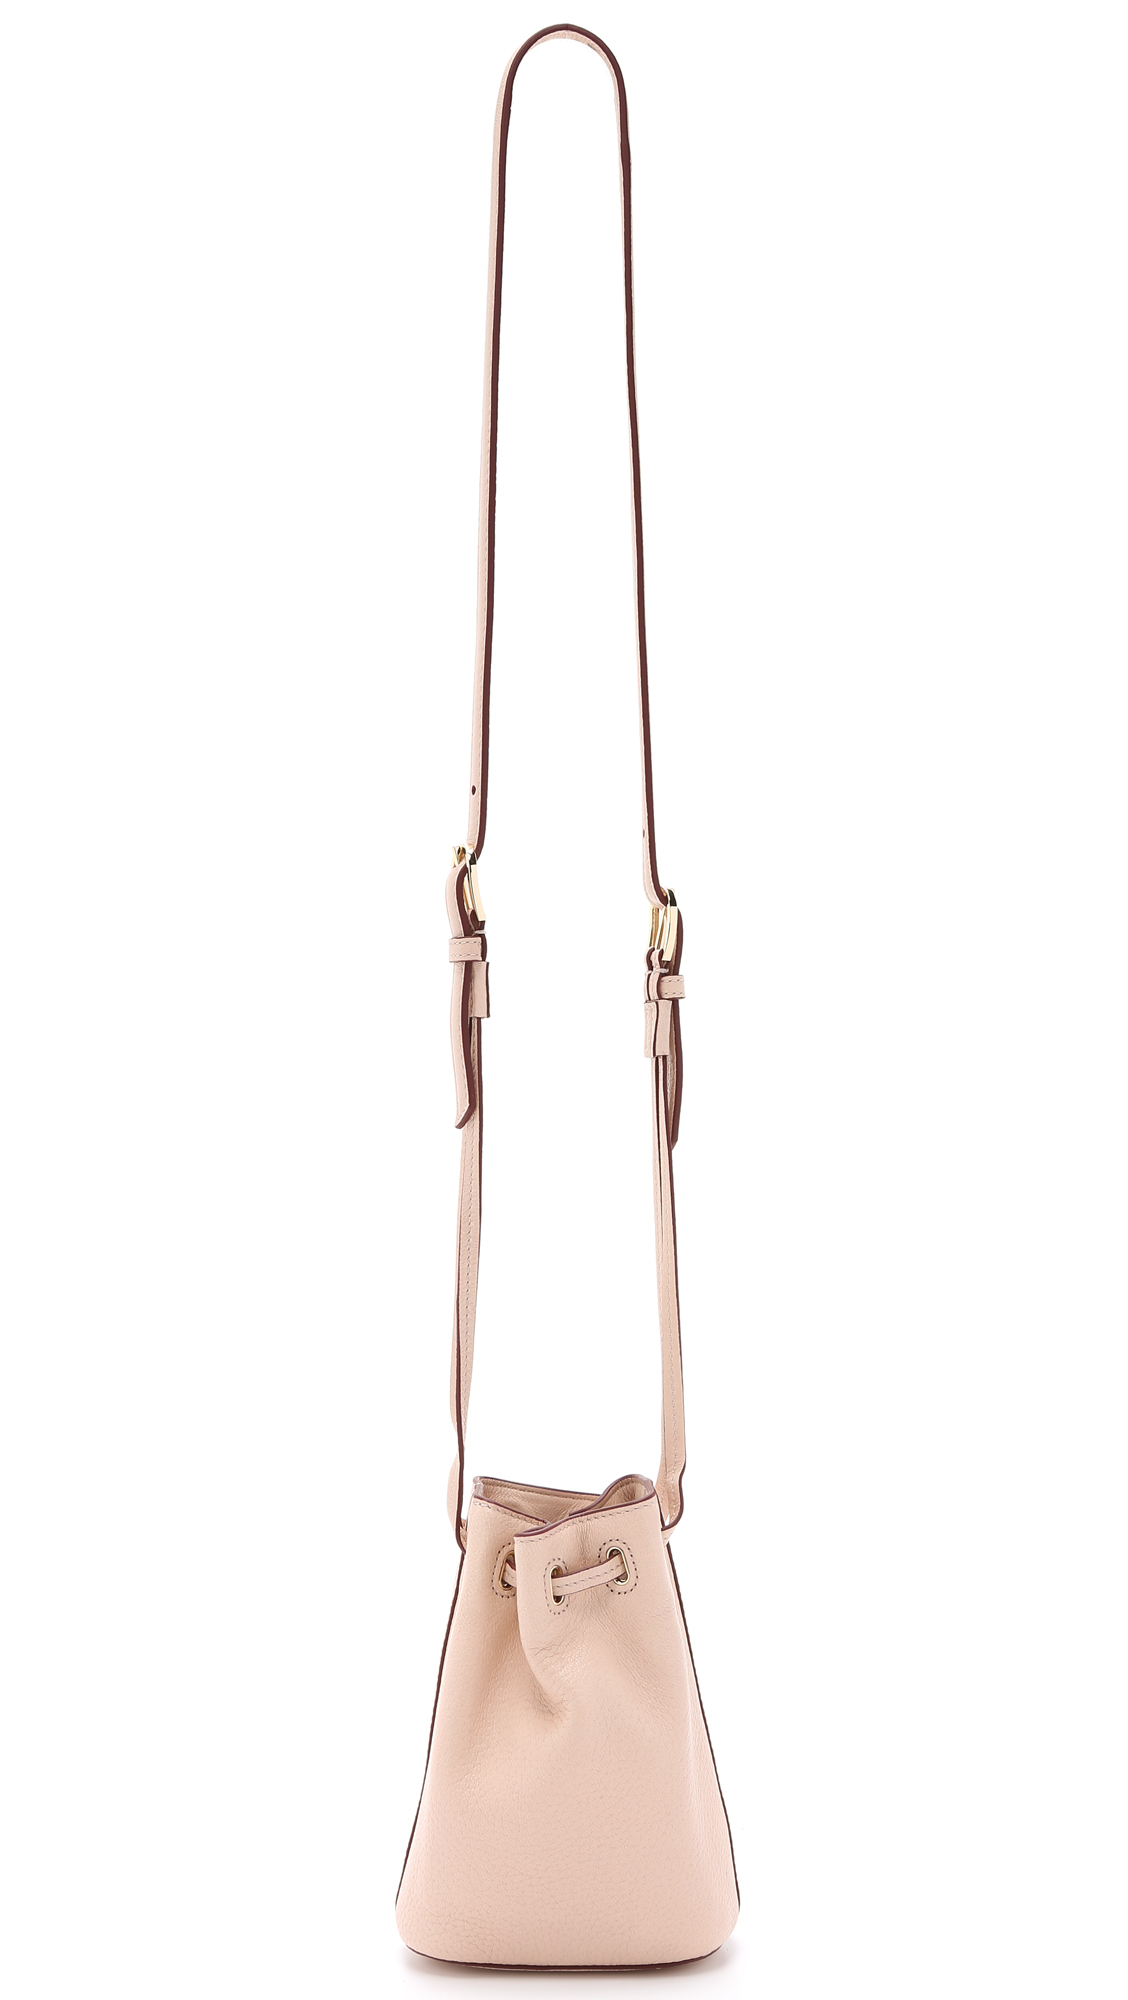 9f69116f7d72 Tory Burch Brody Collection Up To 70 Off At Tradesy. Tory Burch Brody Mini  Bucket Bag ...